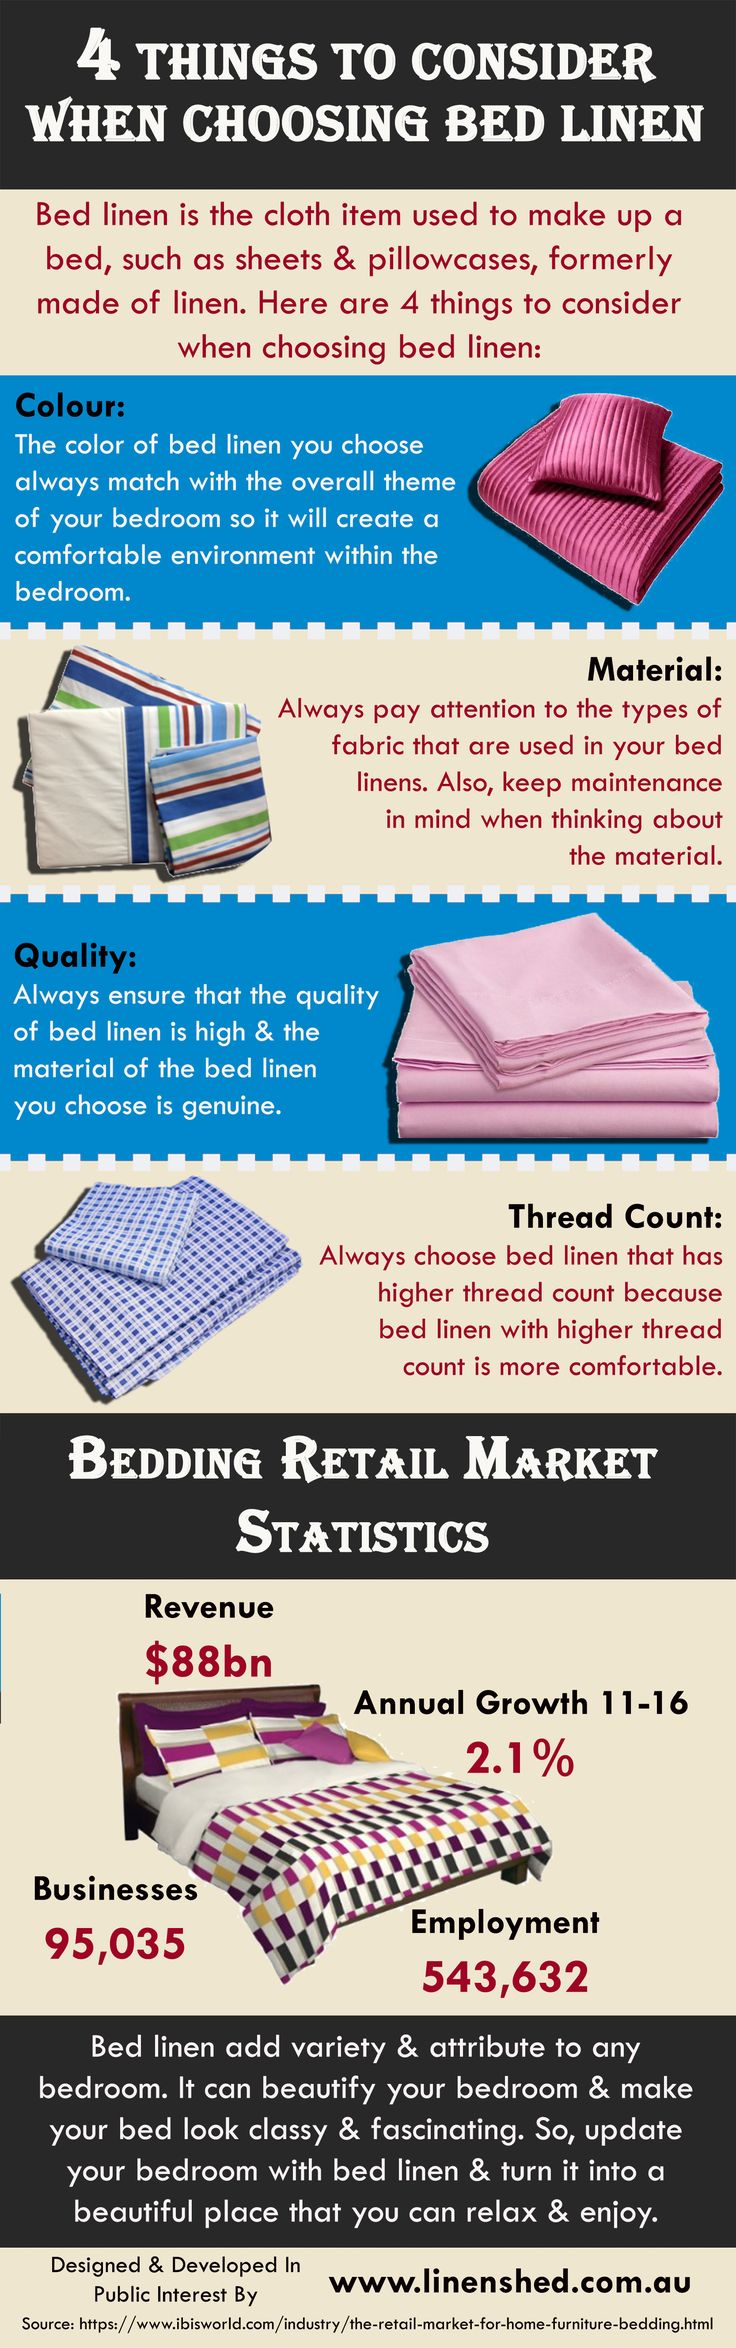 This infographic provide information on 4 Things To Consider When Choosing Bed Linen. For more info please visit: https://www.linenshed.com.au.